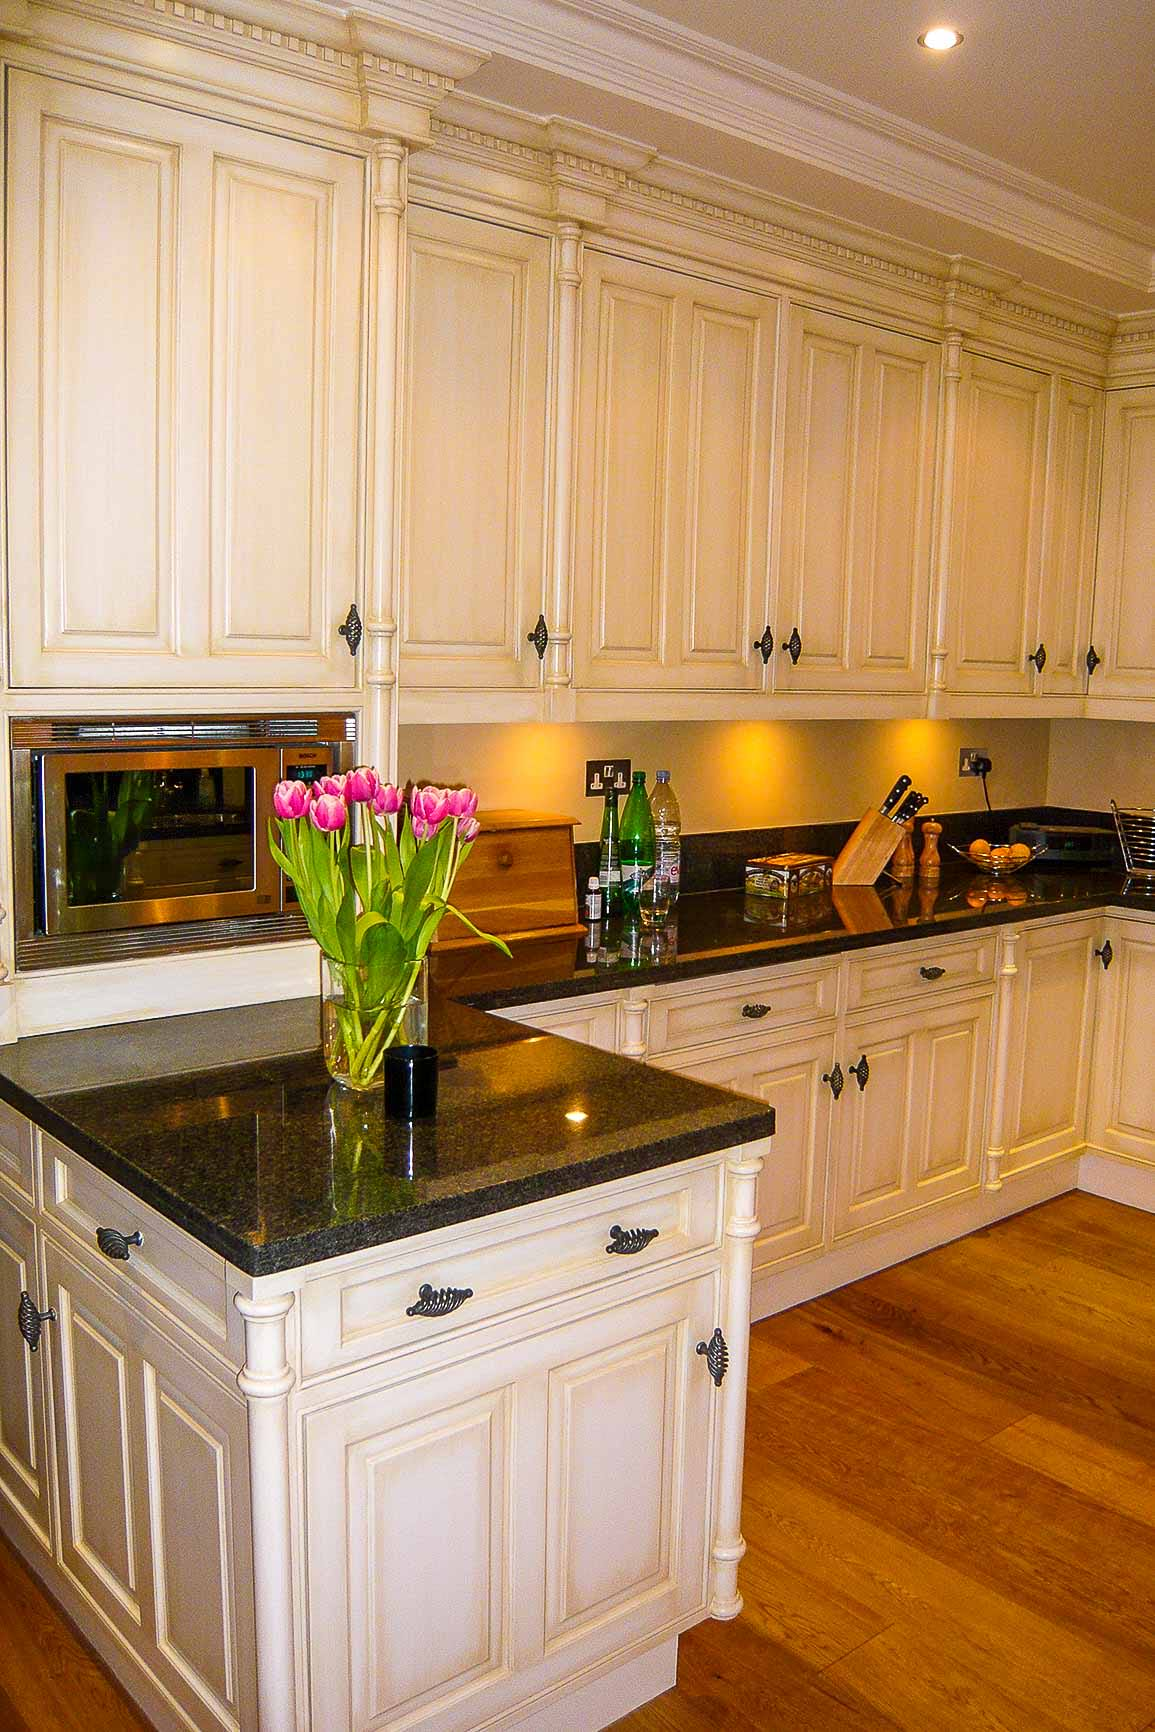 Jack Hyams | Custom Made Kitchen Cabinets & Fronts